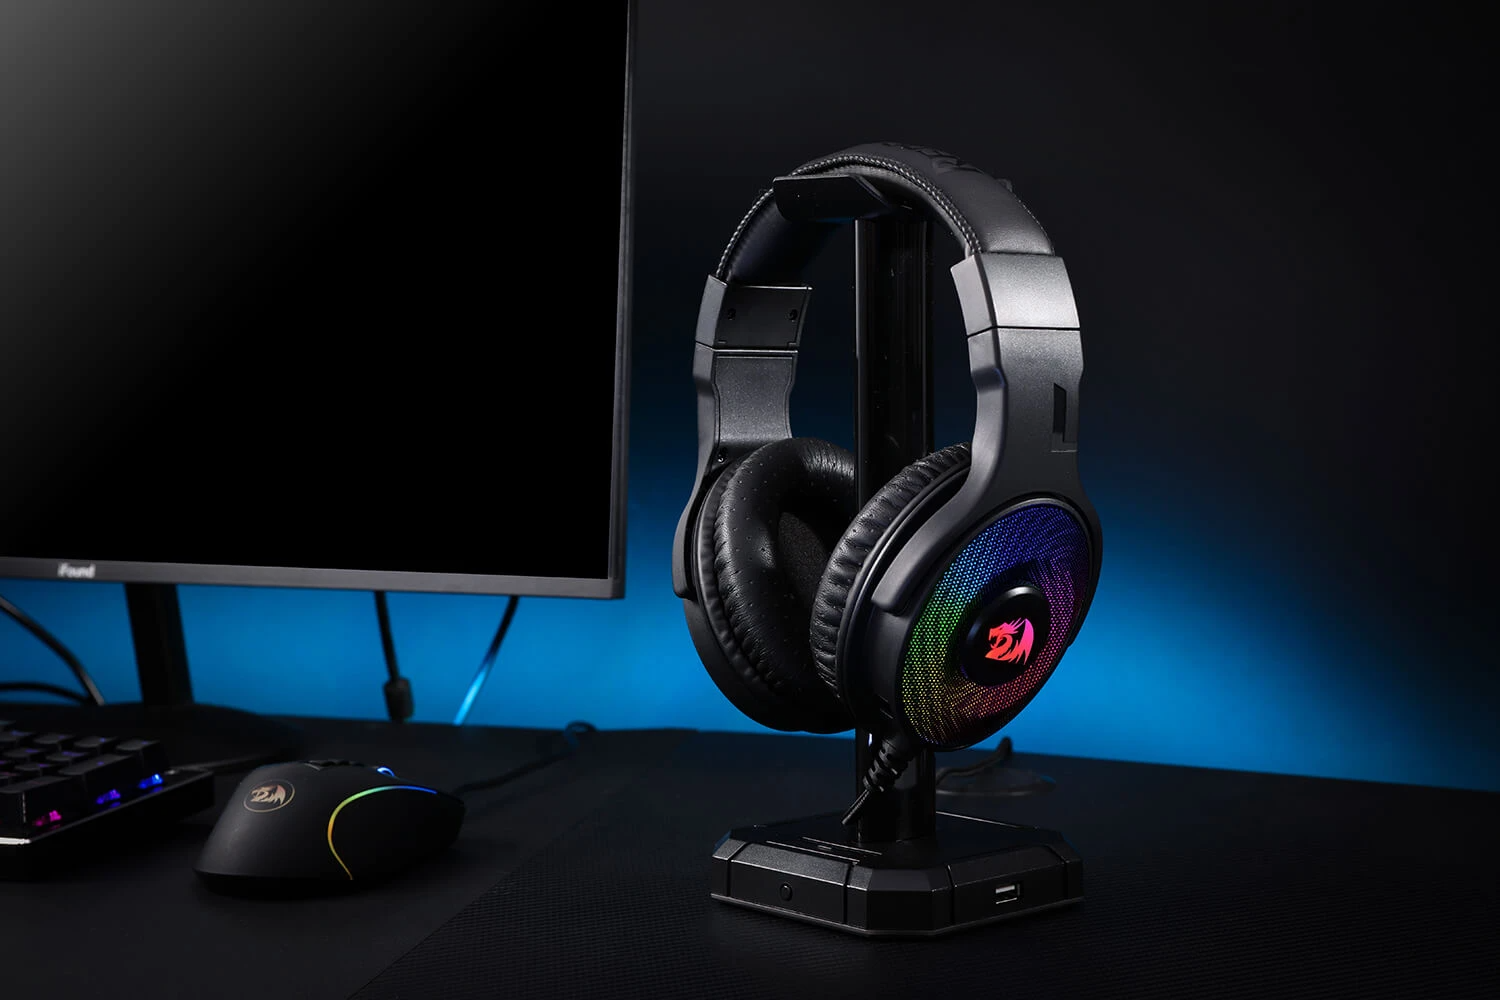 redragon rgb gaming headset